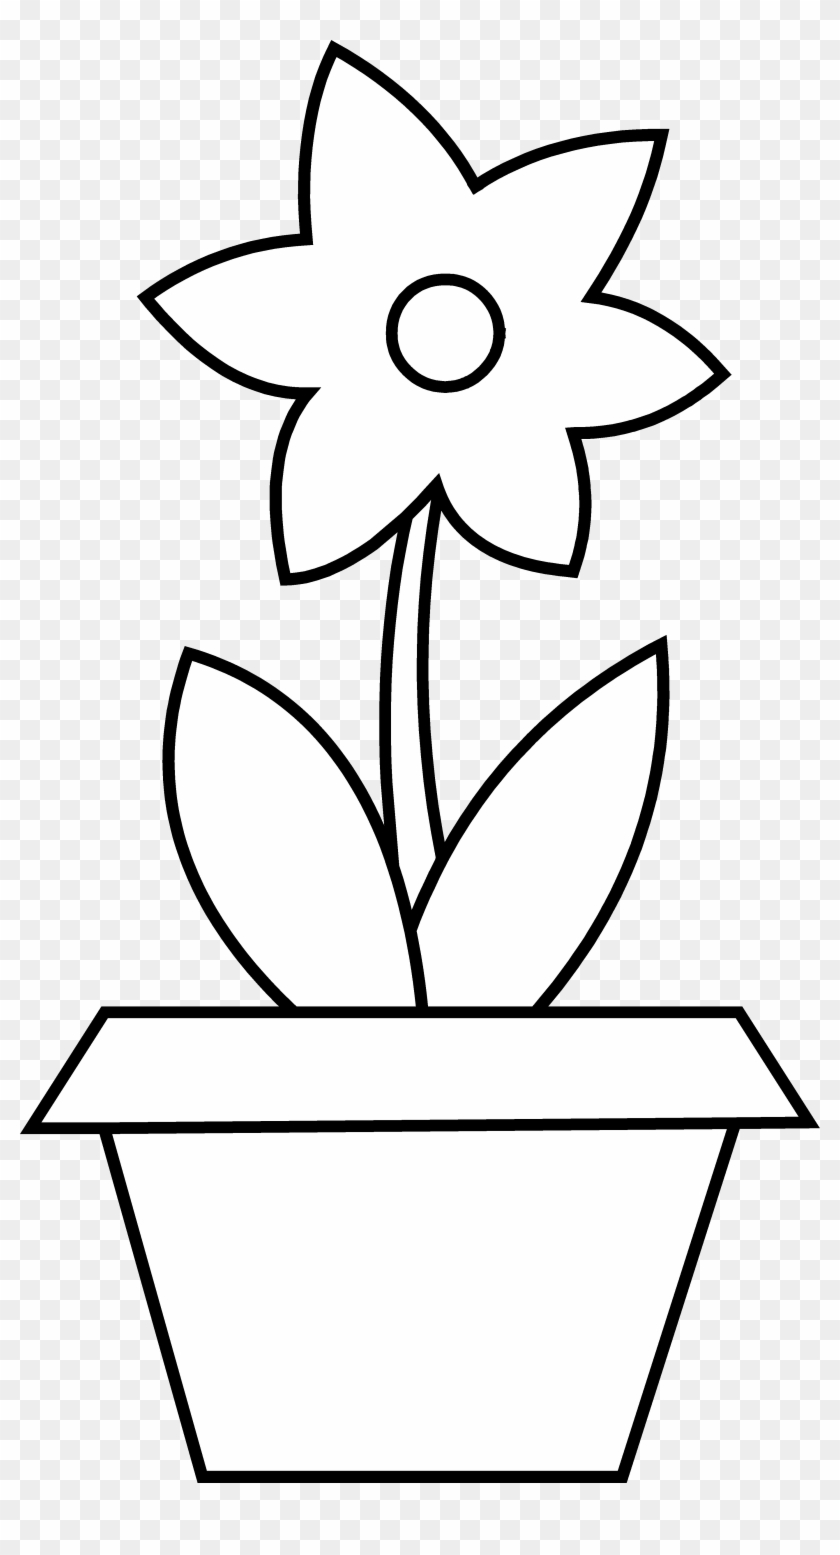 Plant Clipart Colouring.